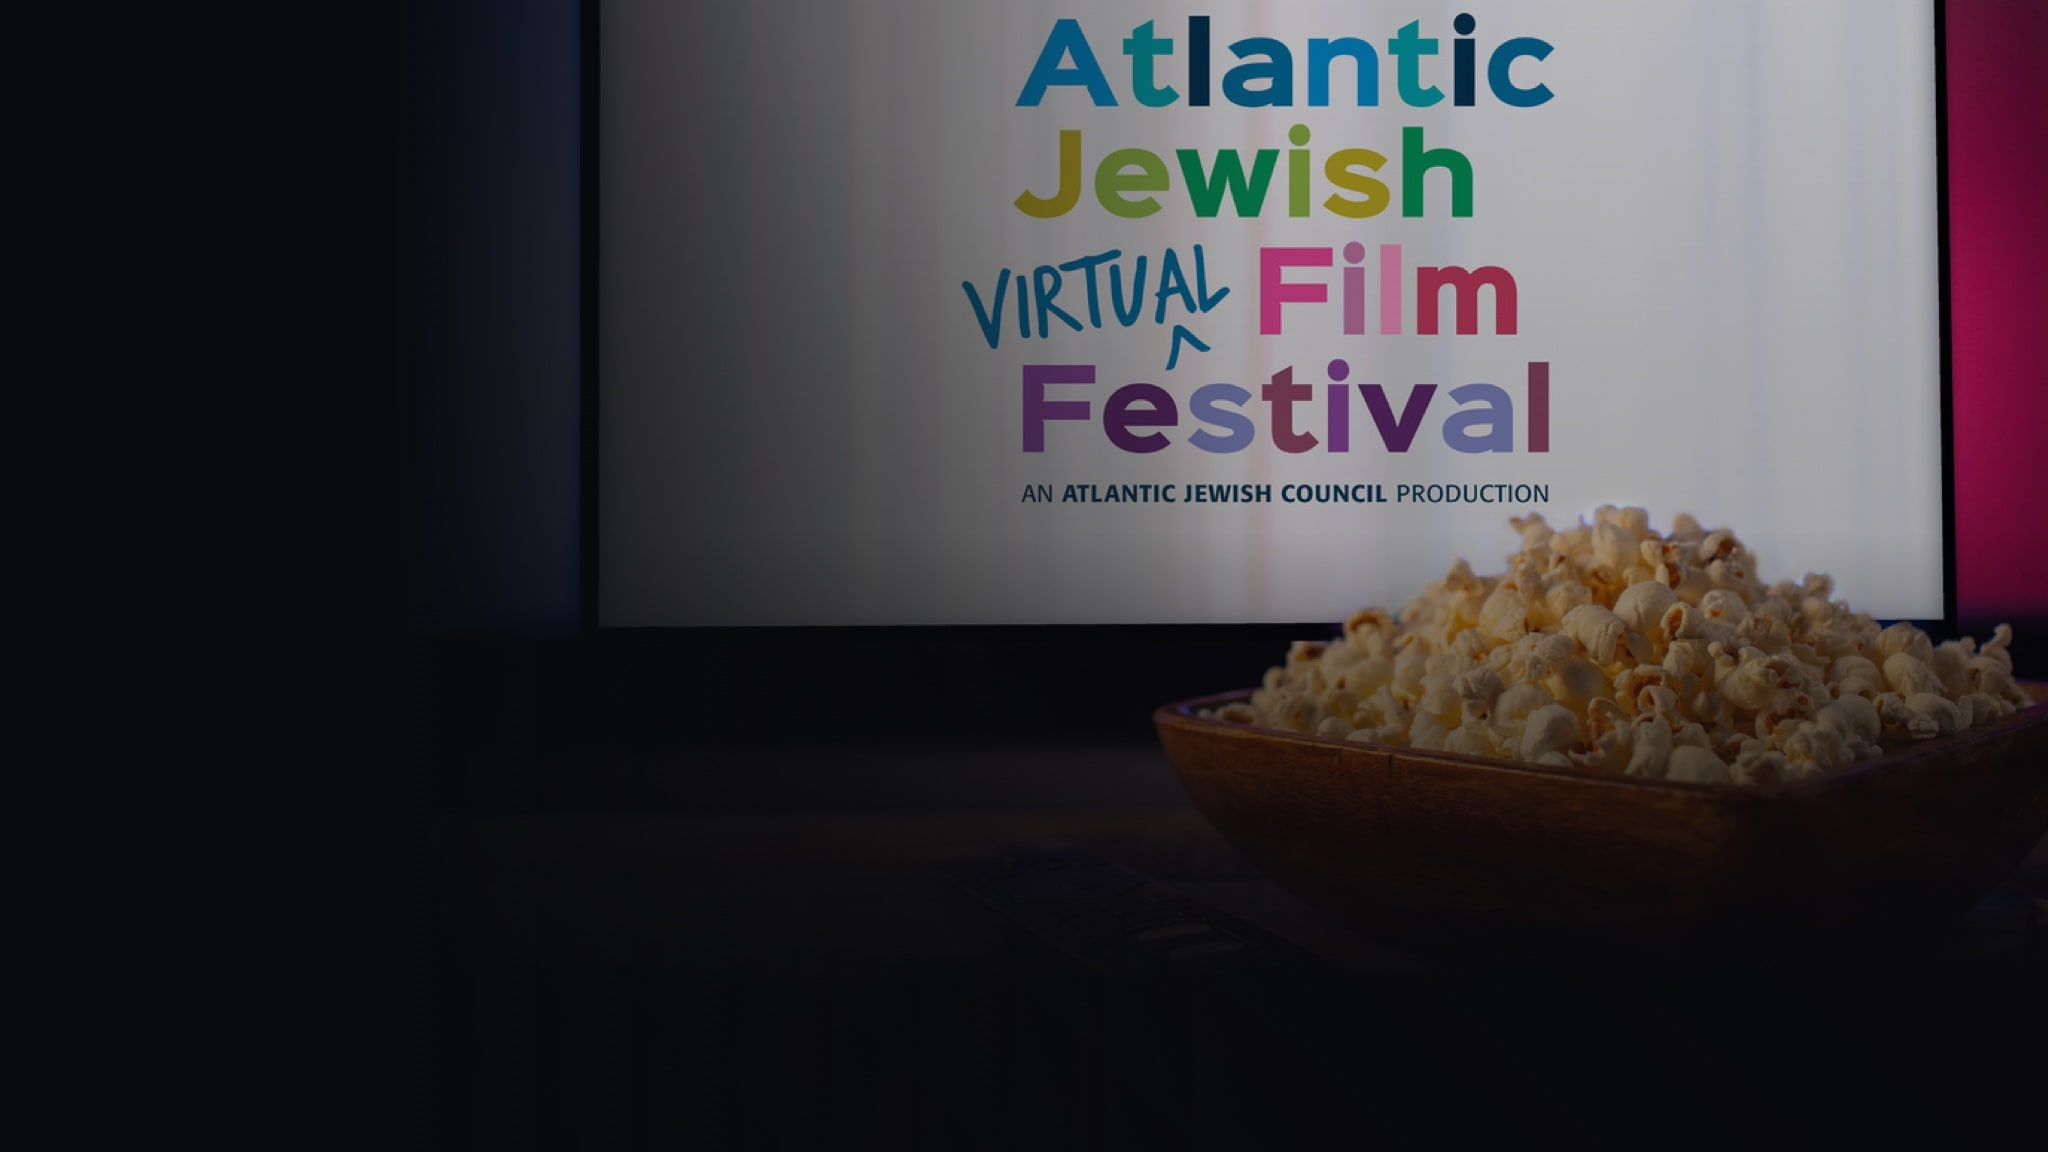 Background image for the Atlantic Jewish Film Festival